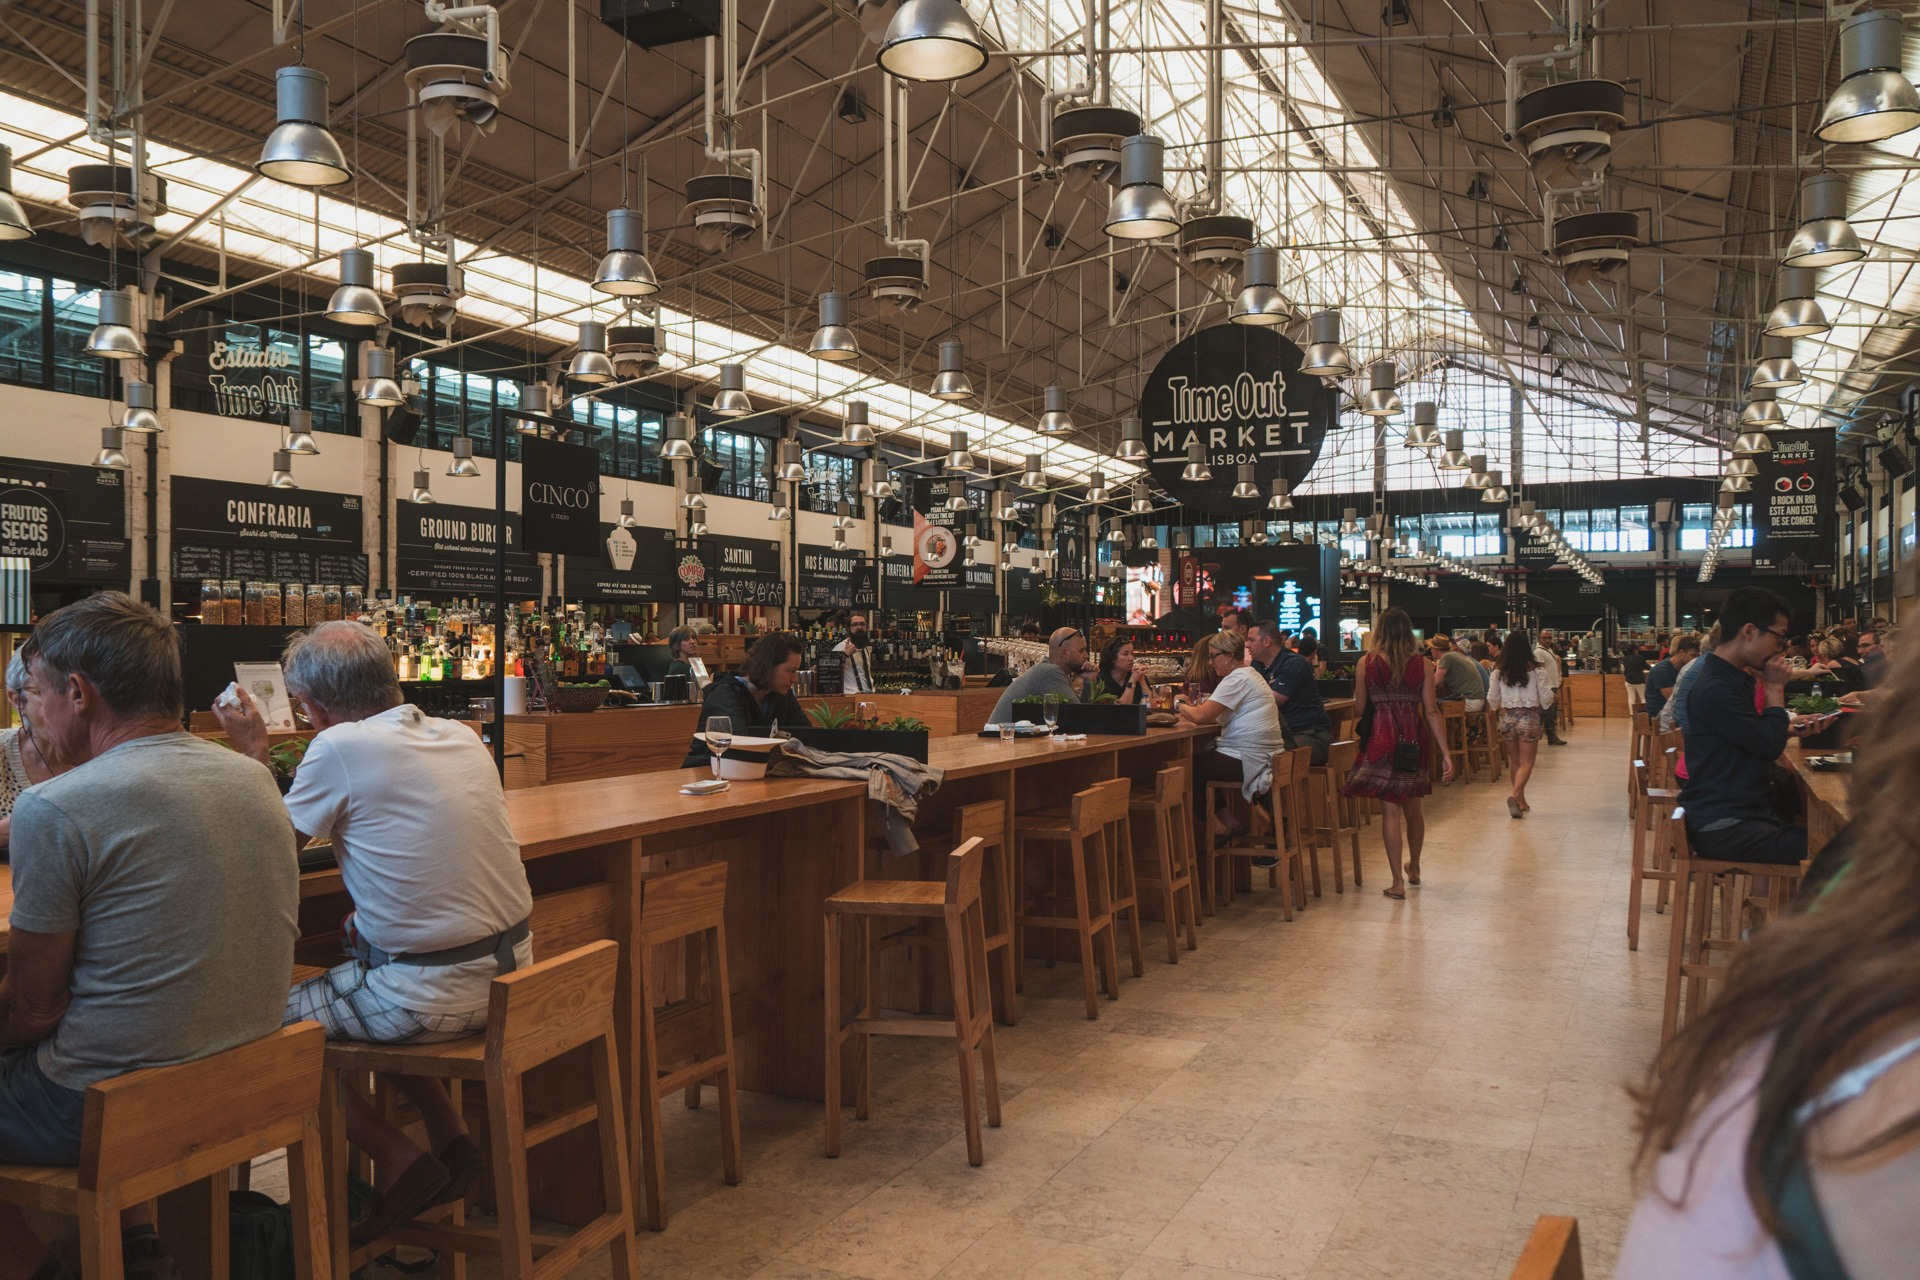 Awesome eats at Timeout Market in Lisbon Portugal